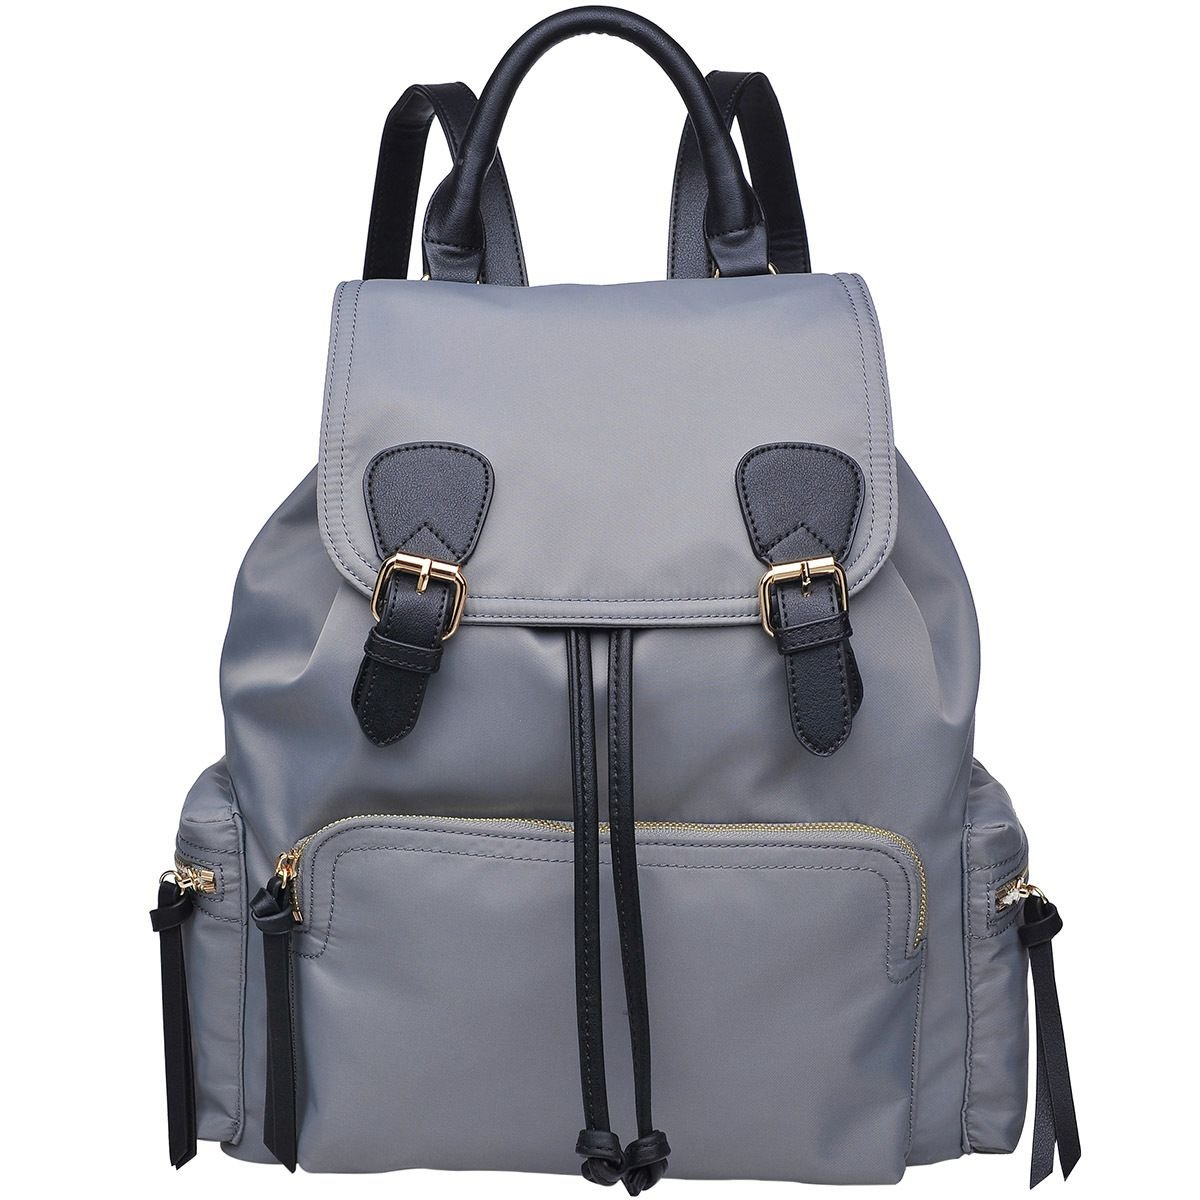 Urban Expressions Top Flap Double Buckle Yoga Backpack - Women's Grey/Black, One Size